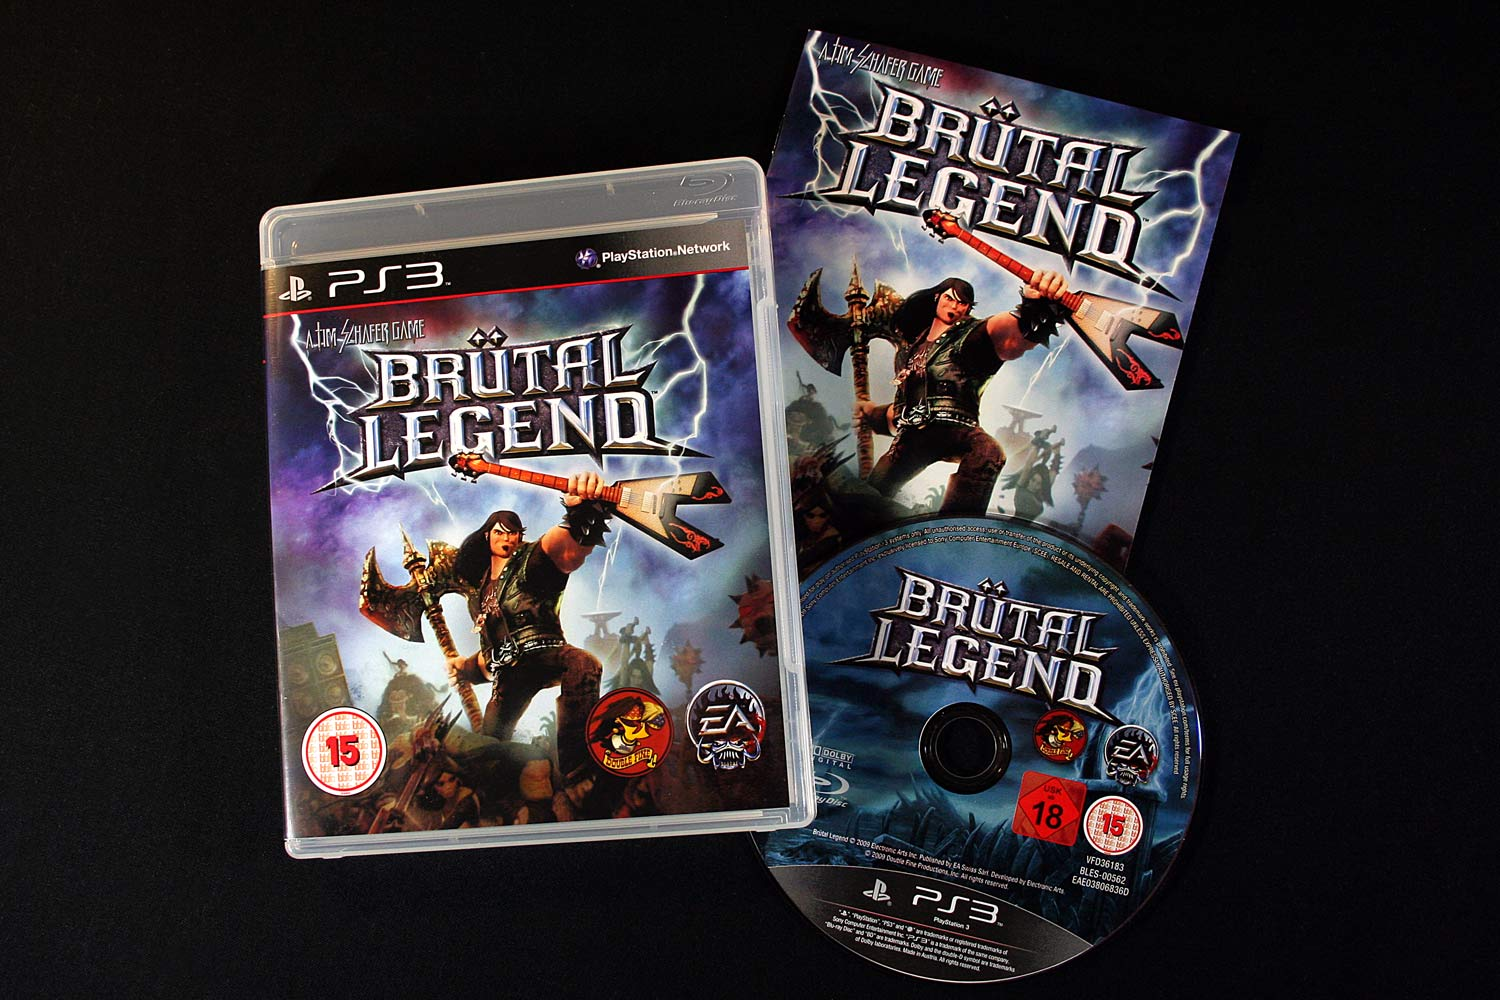 [Arrivage] - Brutal Legend 2 (PS3)